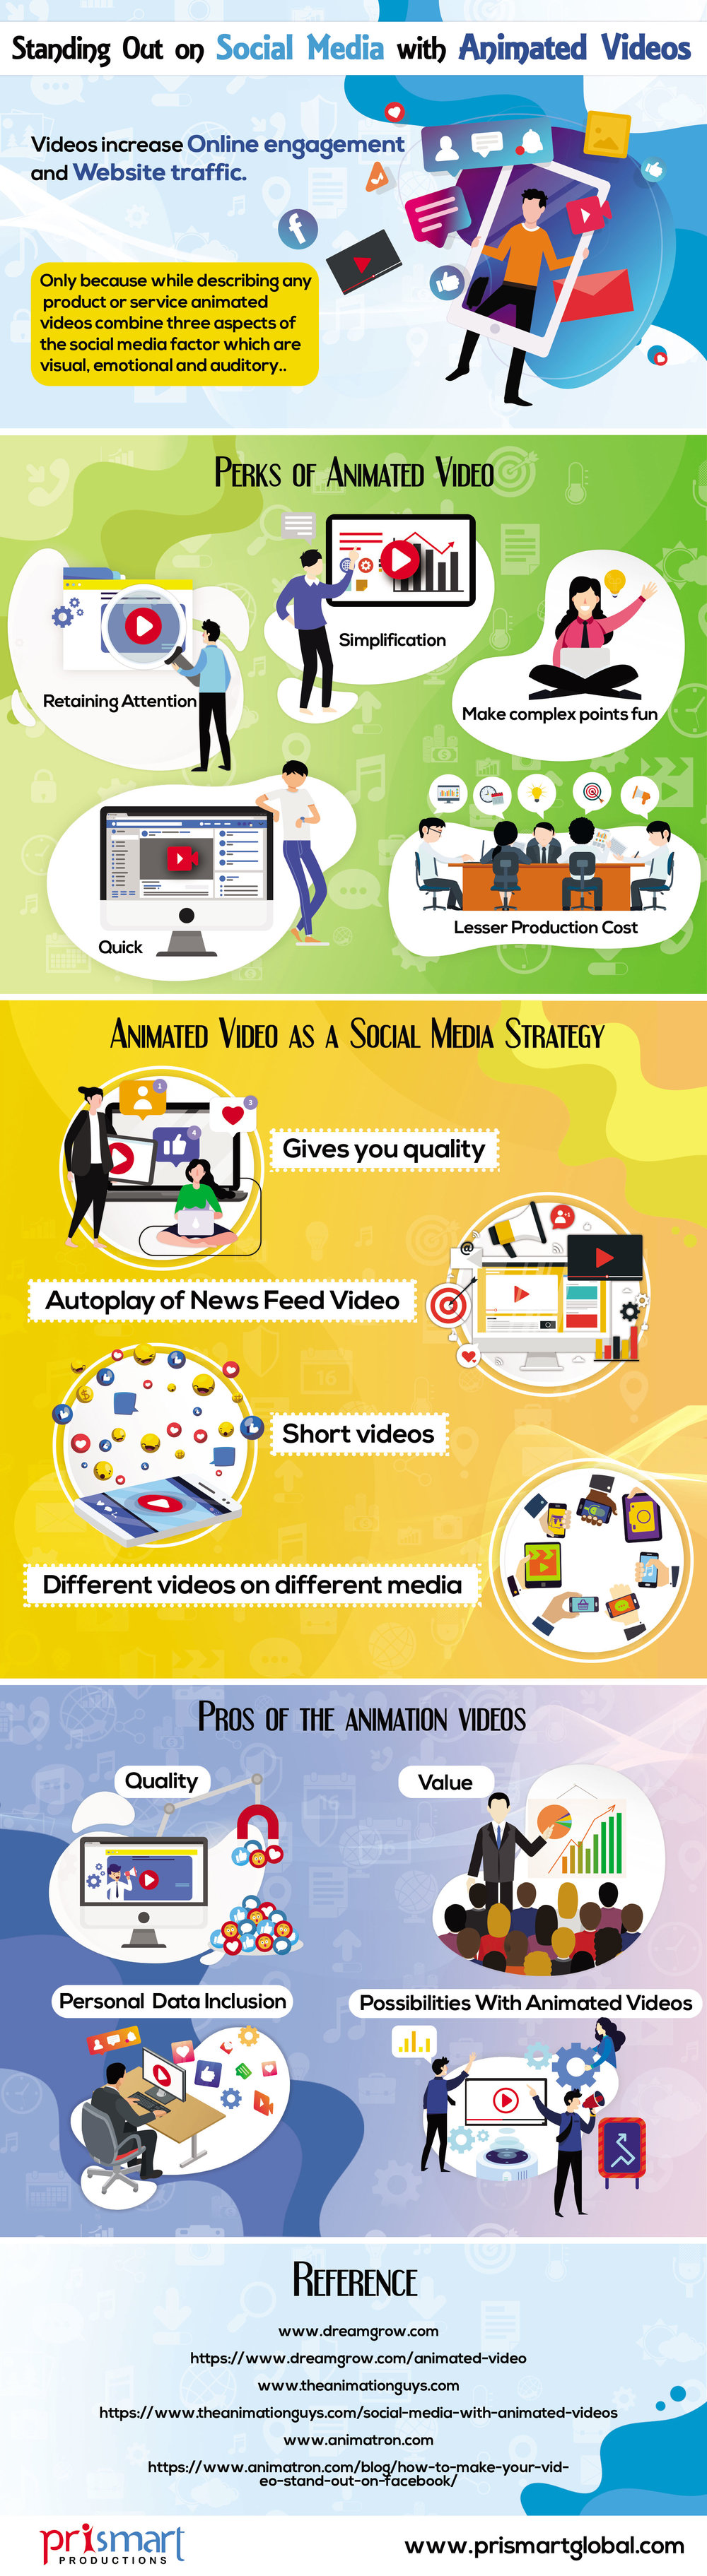 standing-out-on-social-media-with-animated-videos-infographic.jpg